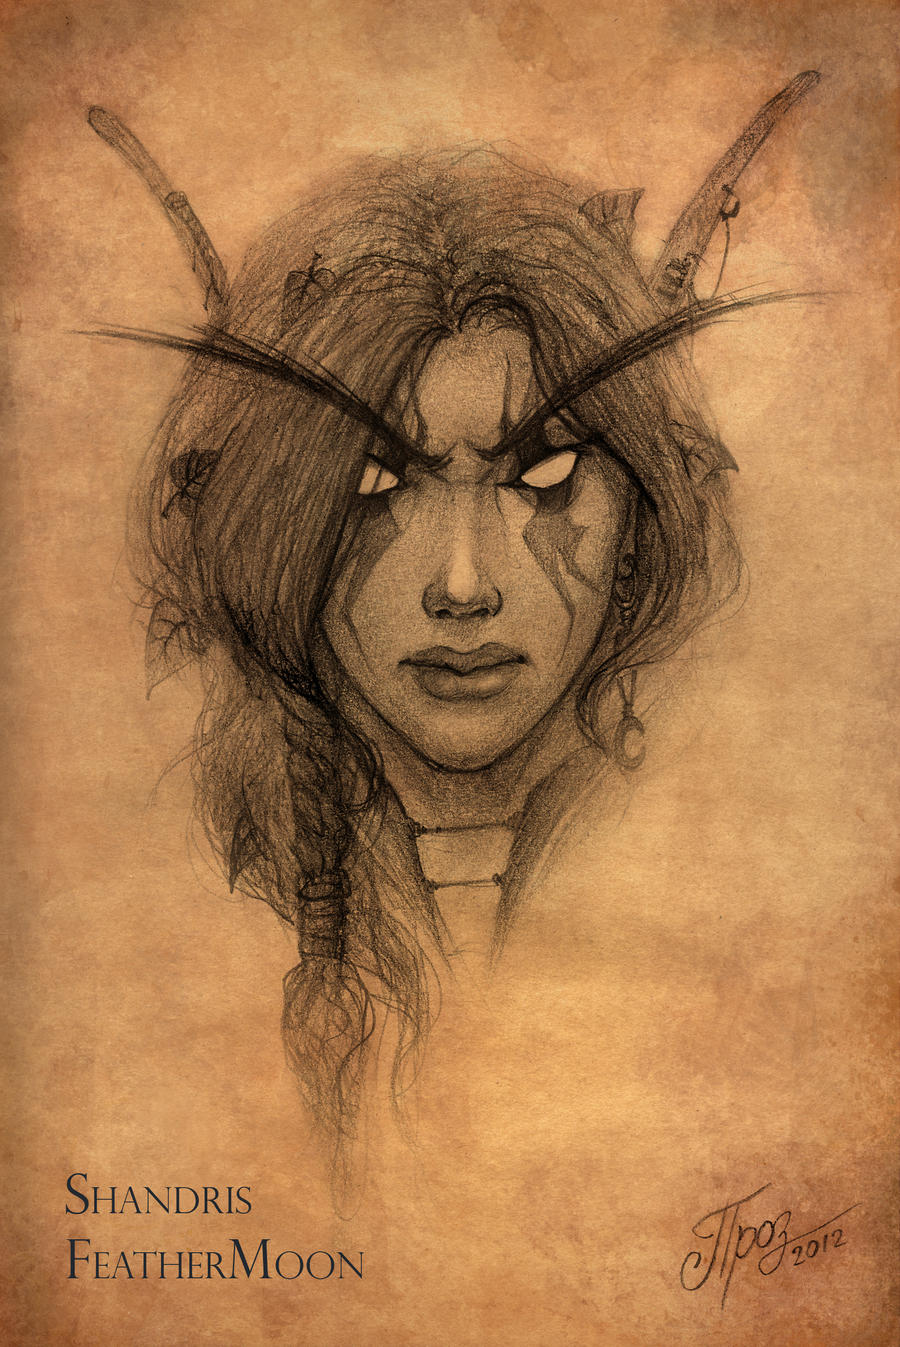 Shandris FeatherMoon - Sketch by TamplierPainter